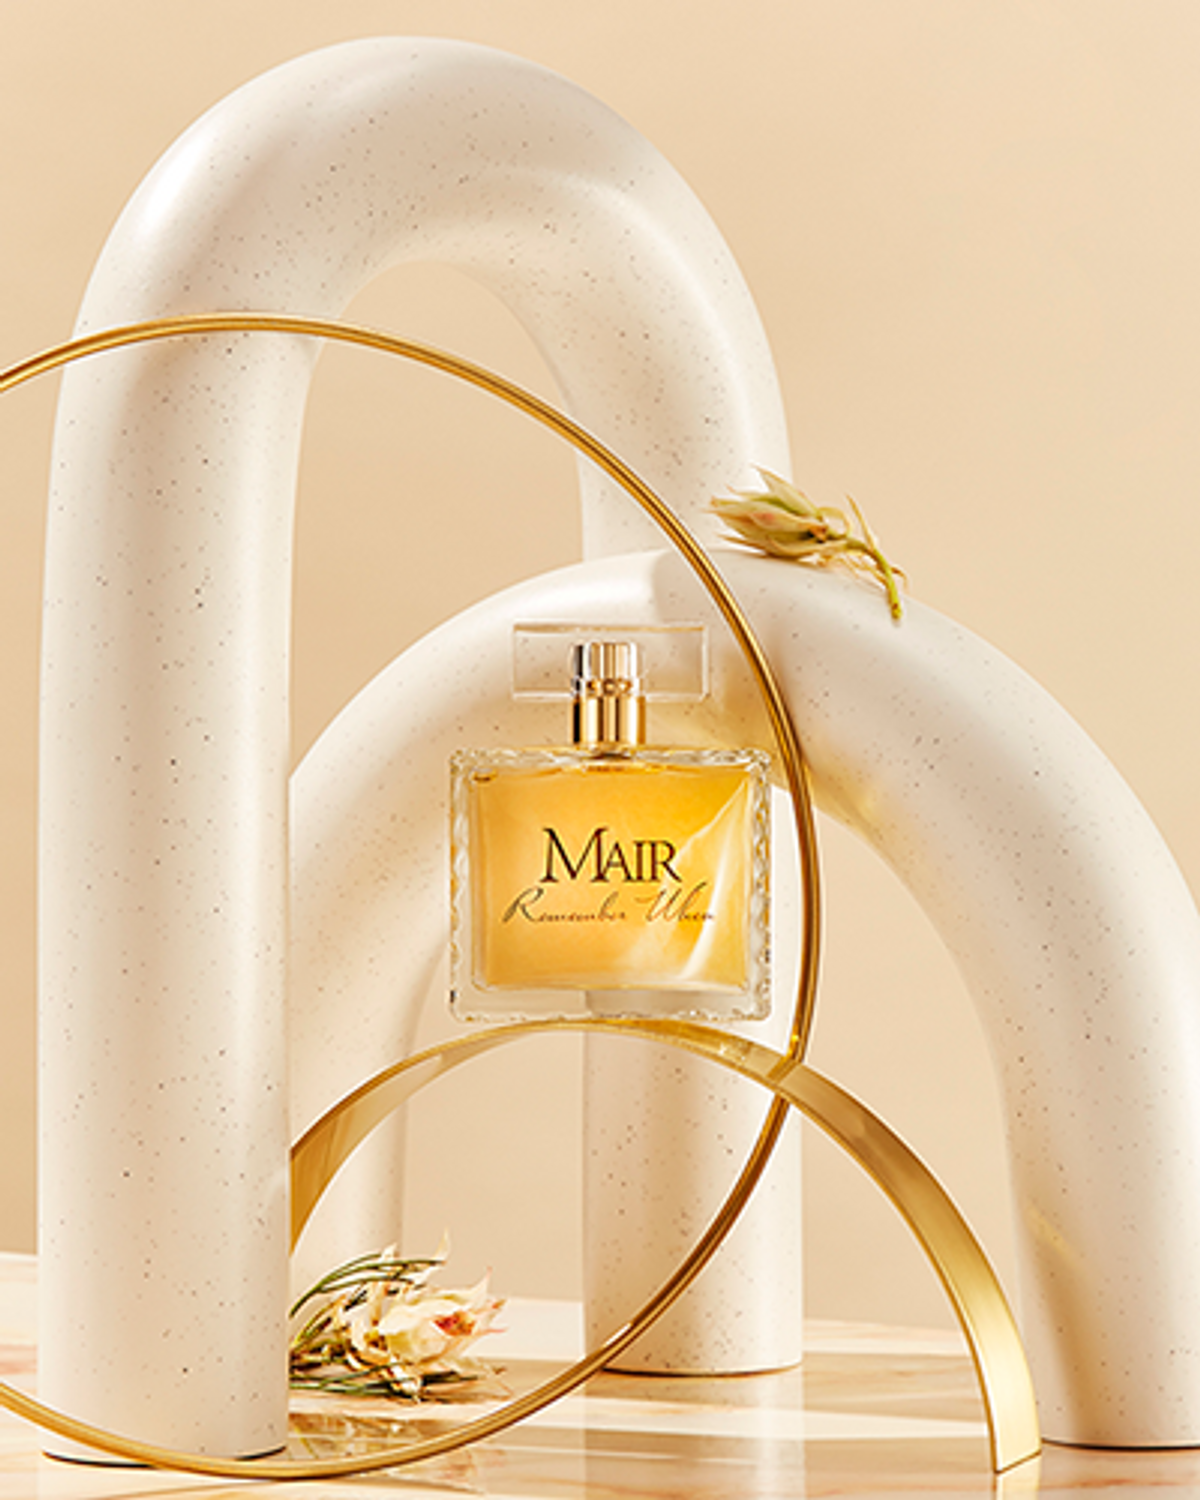 Remember When is the signature fragrance of the MAIR line.